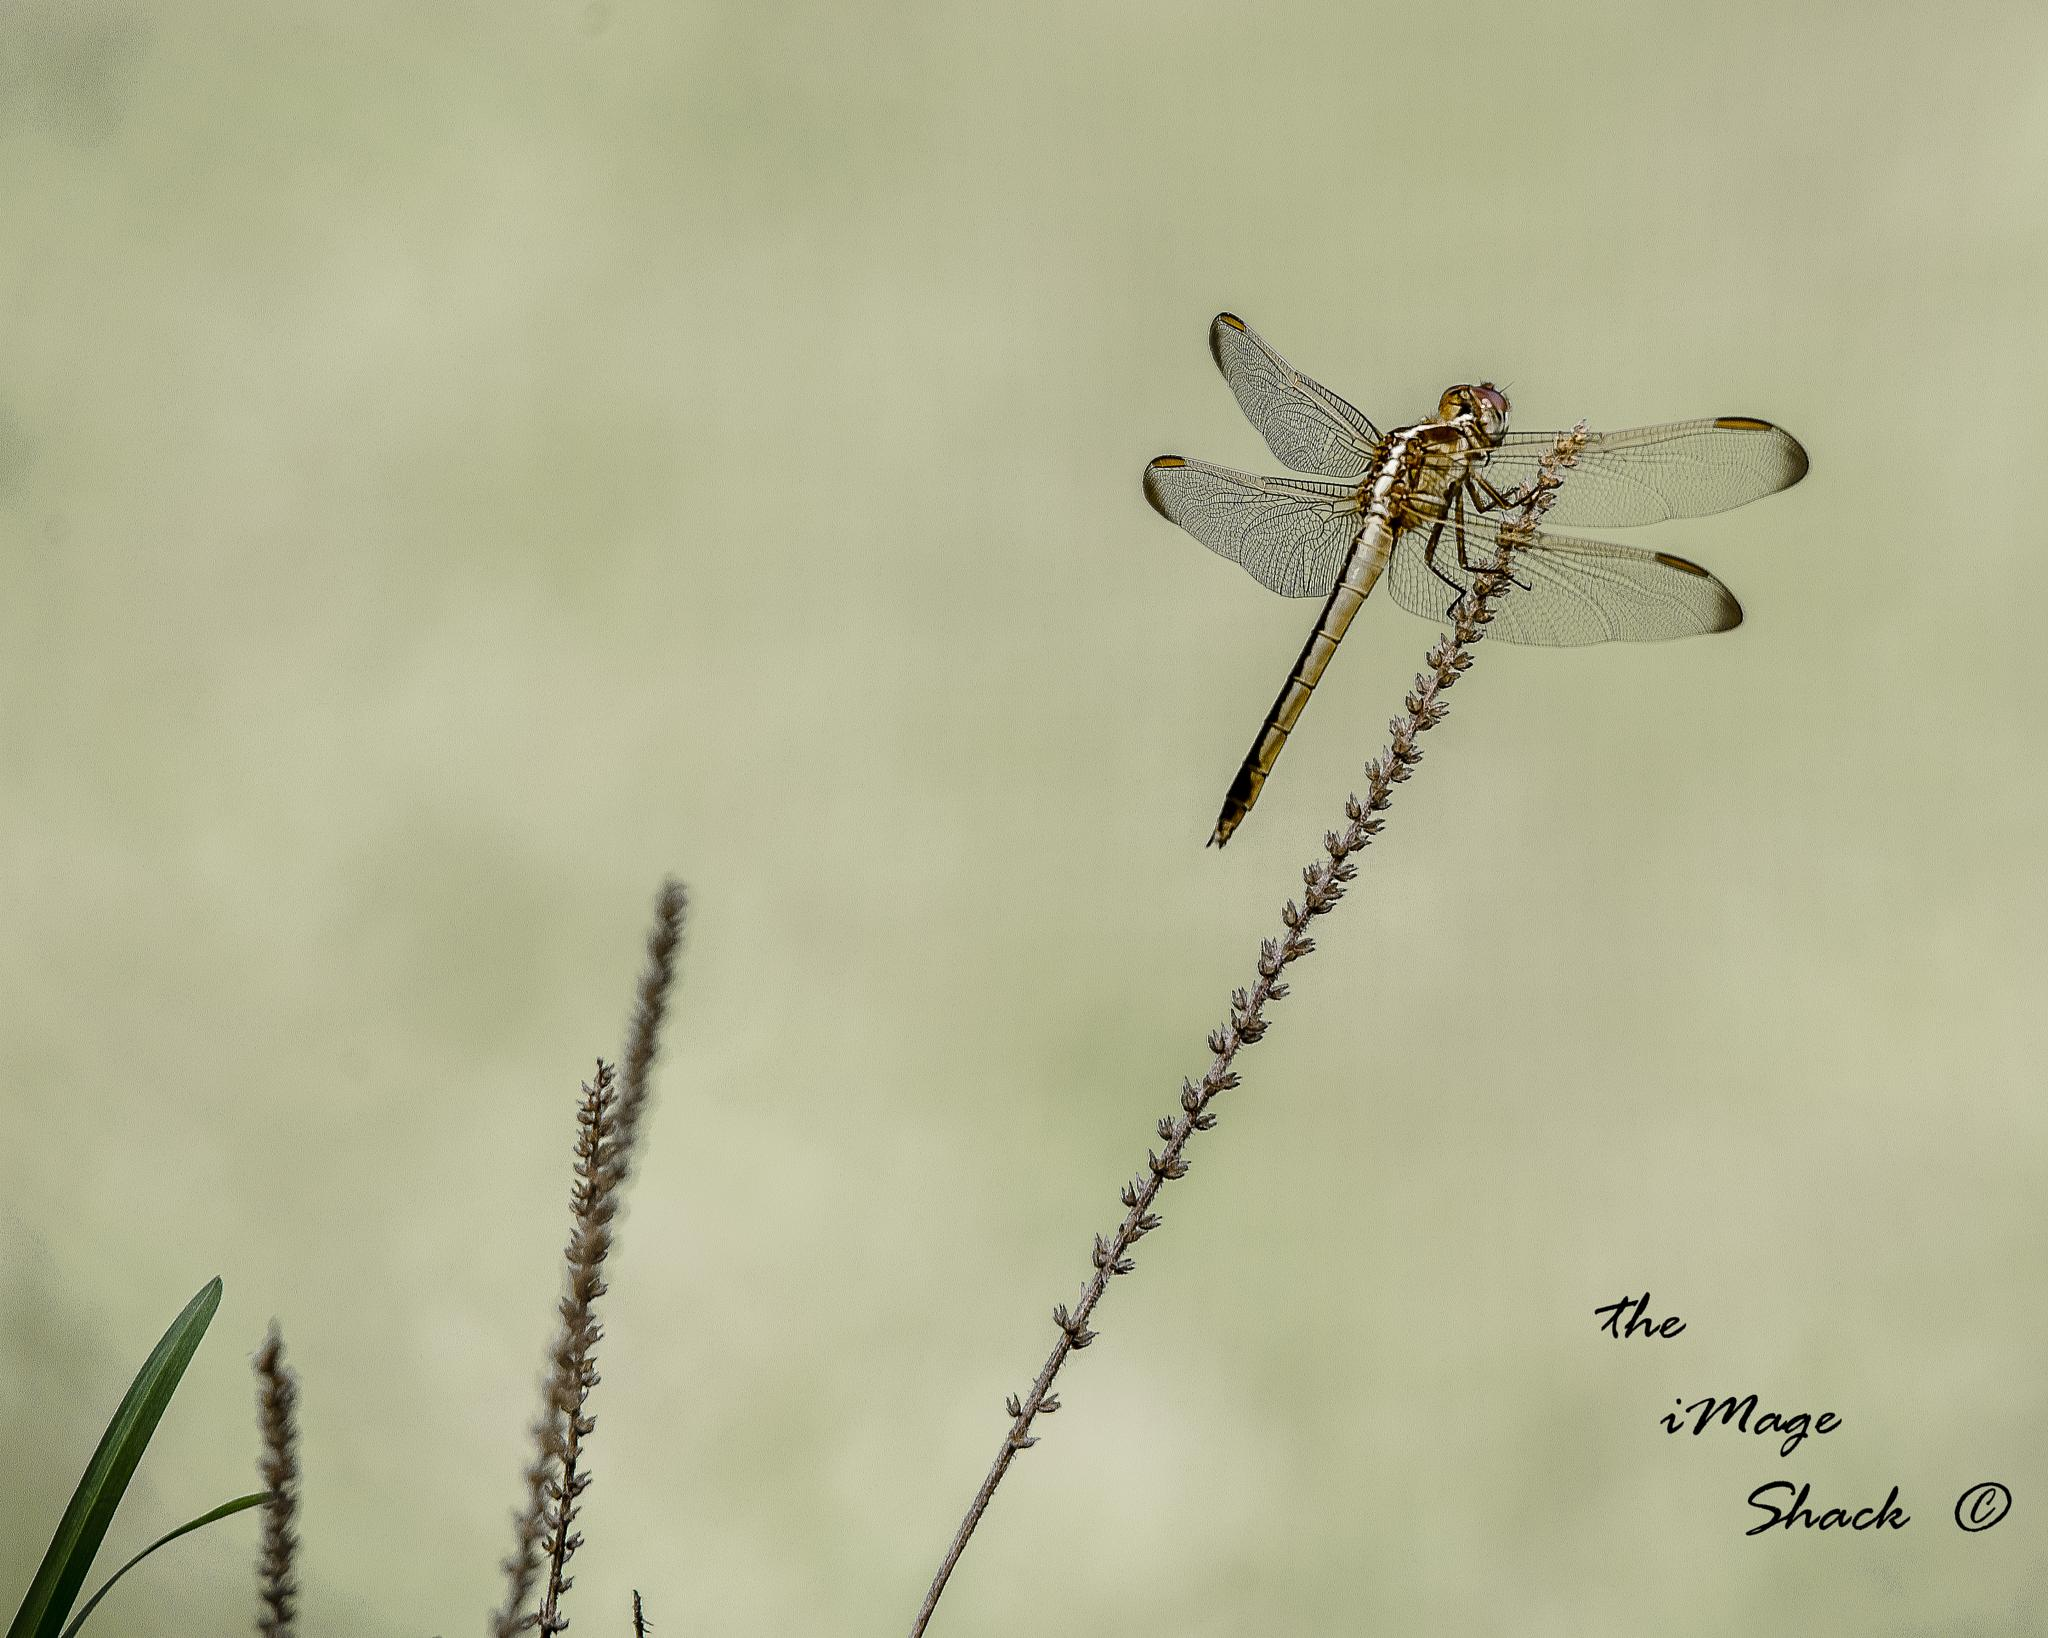 dragonfly by MStrausser of the iMage Shack